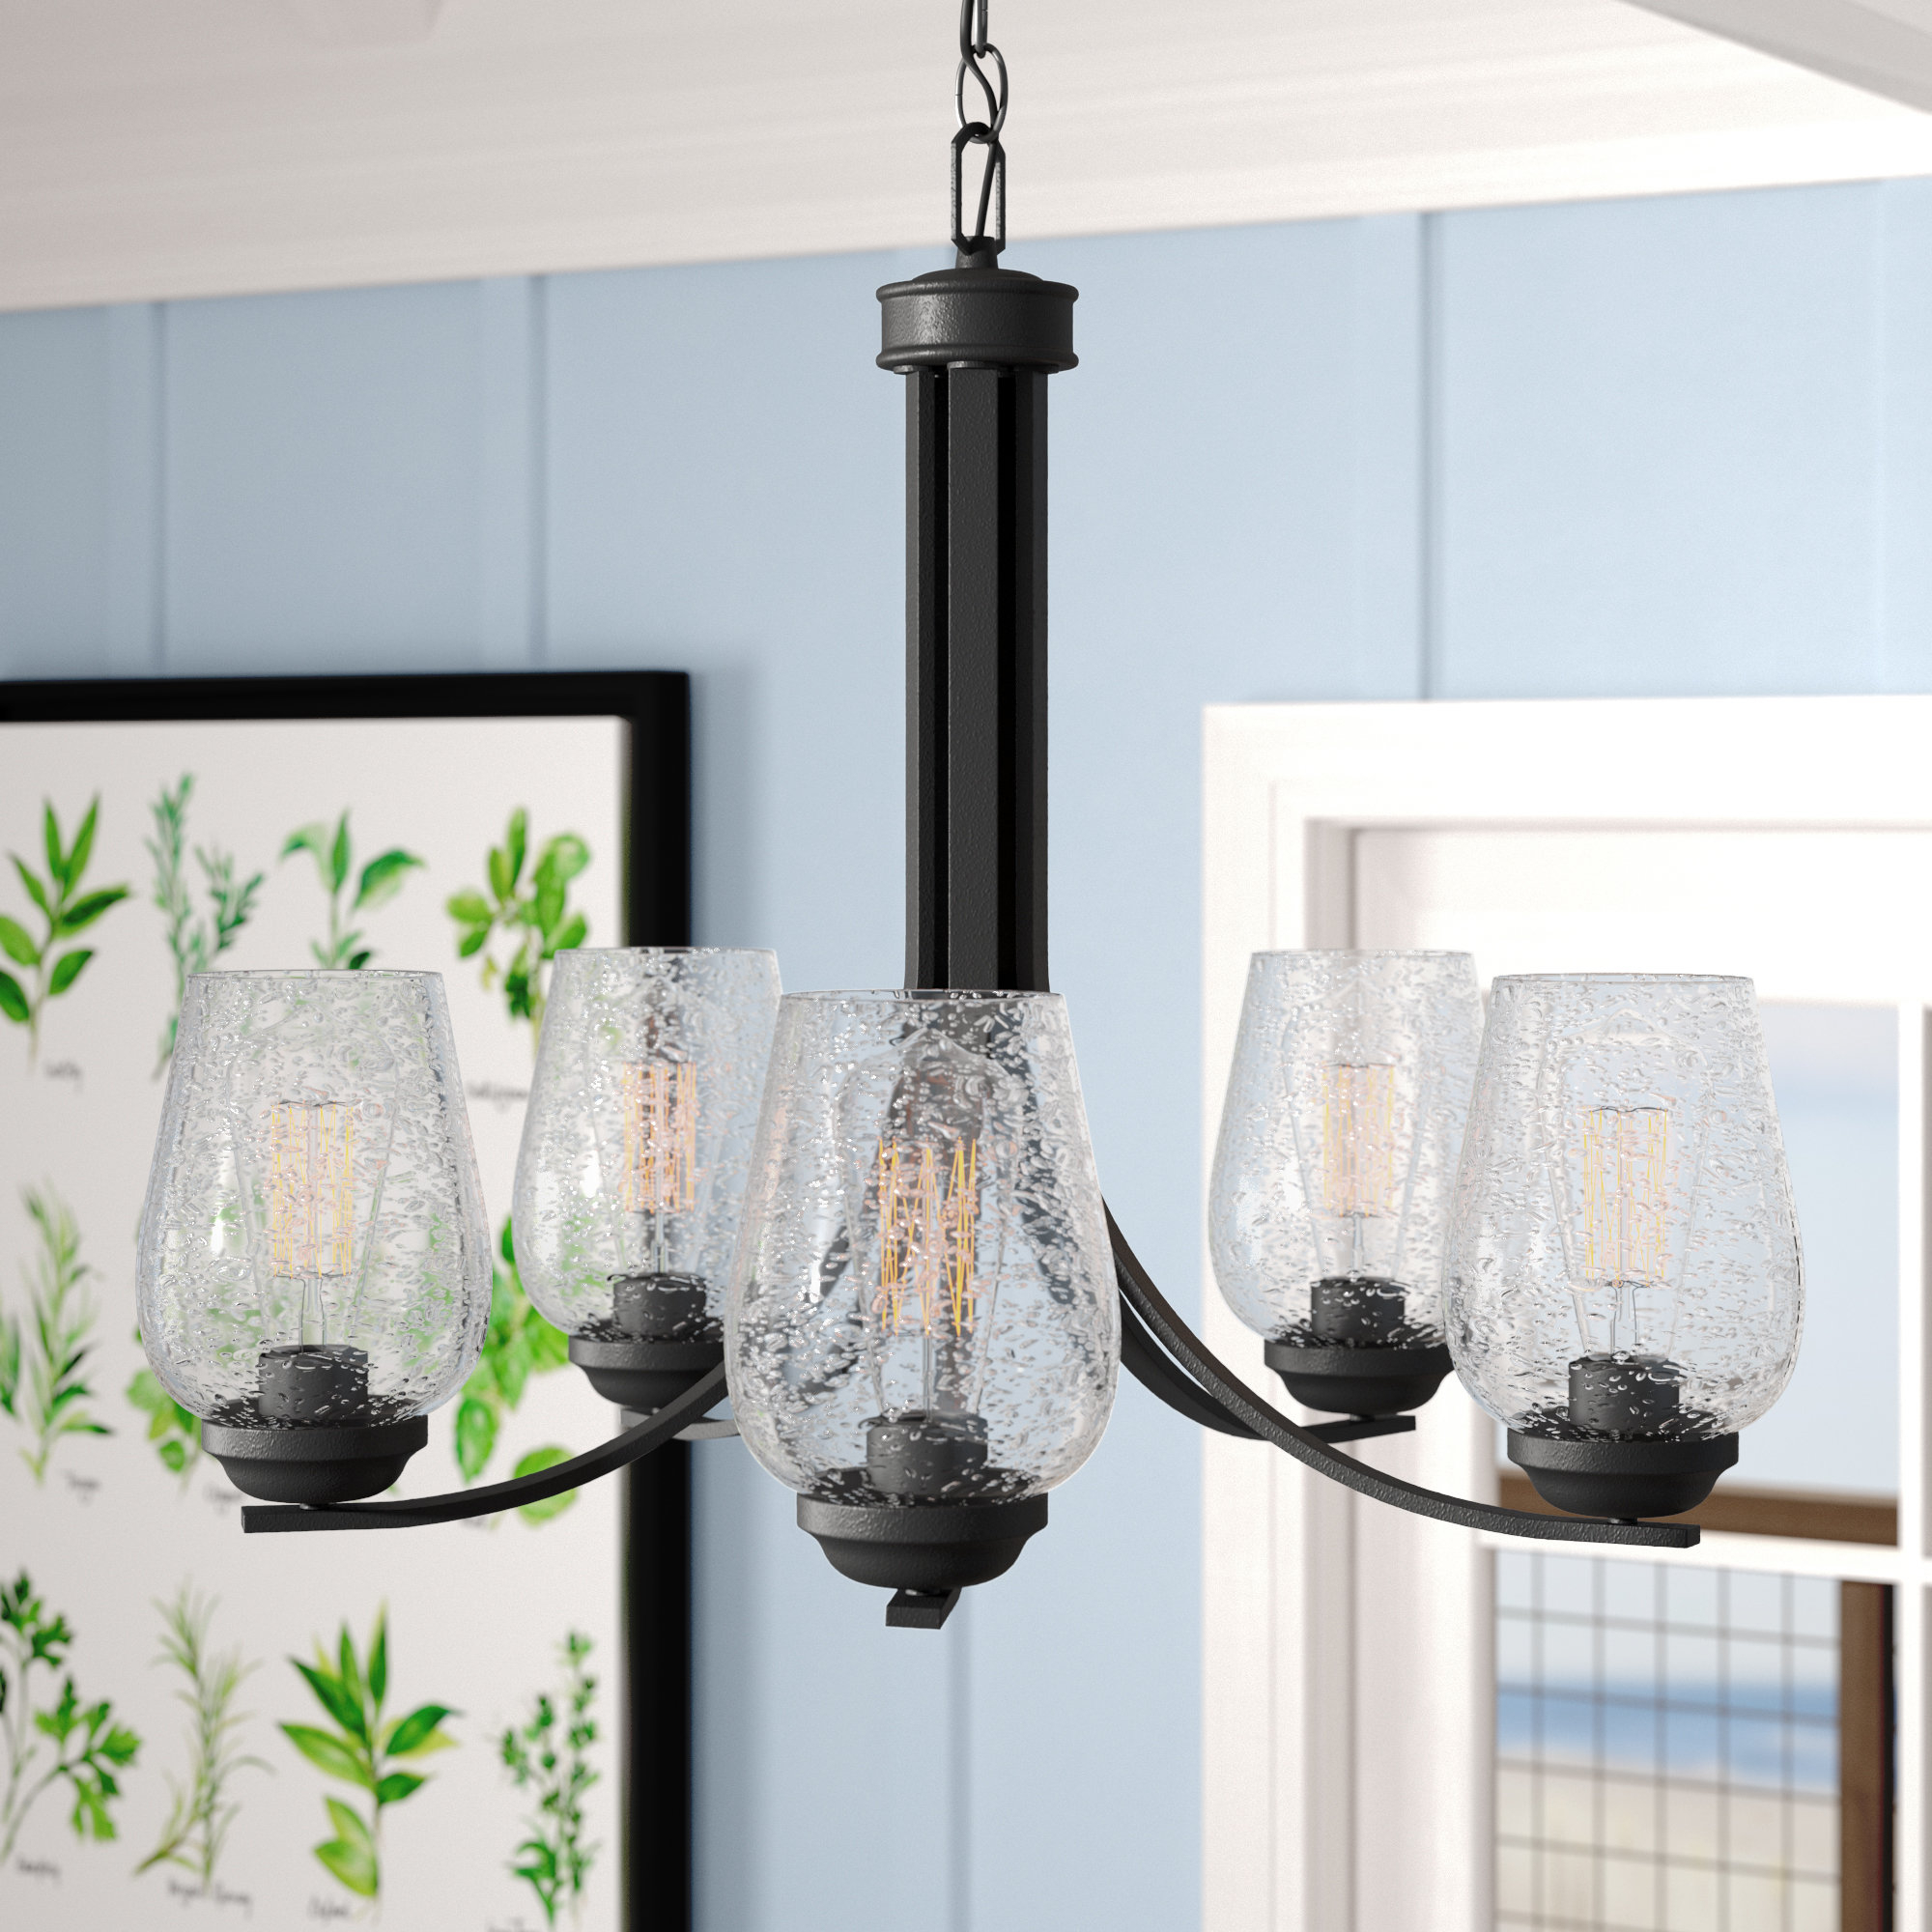 Suki 5 Light Shaded Chandelier | Wayfair Pertaining To Suki 5 Light Shaded Chandeliers (View 19 of 30)